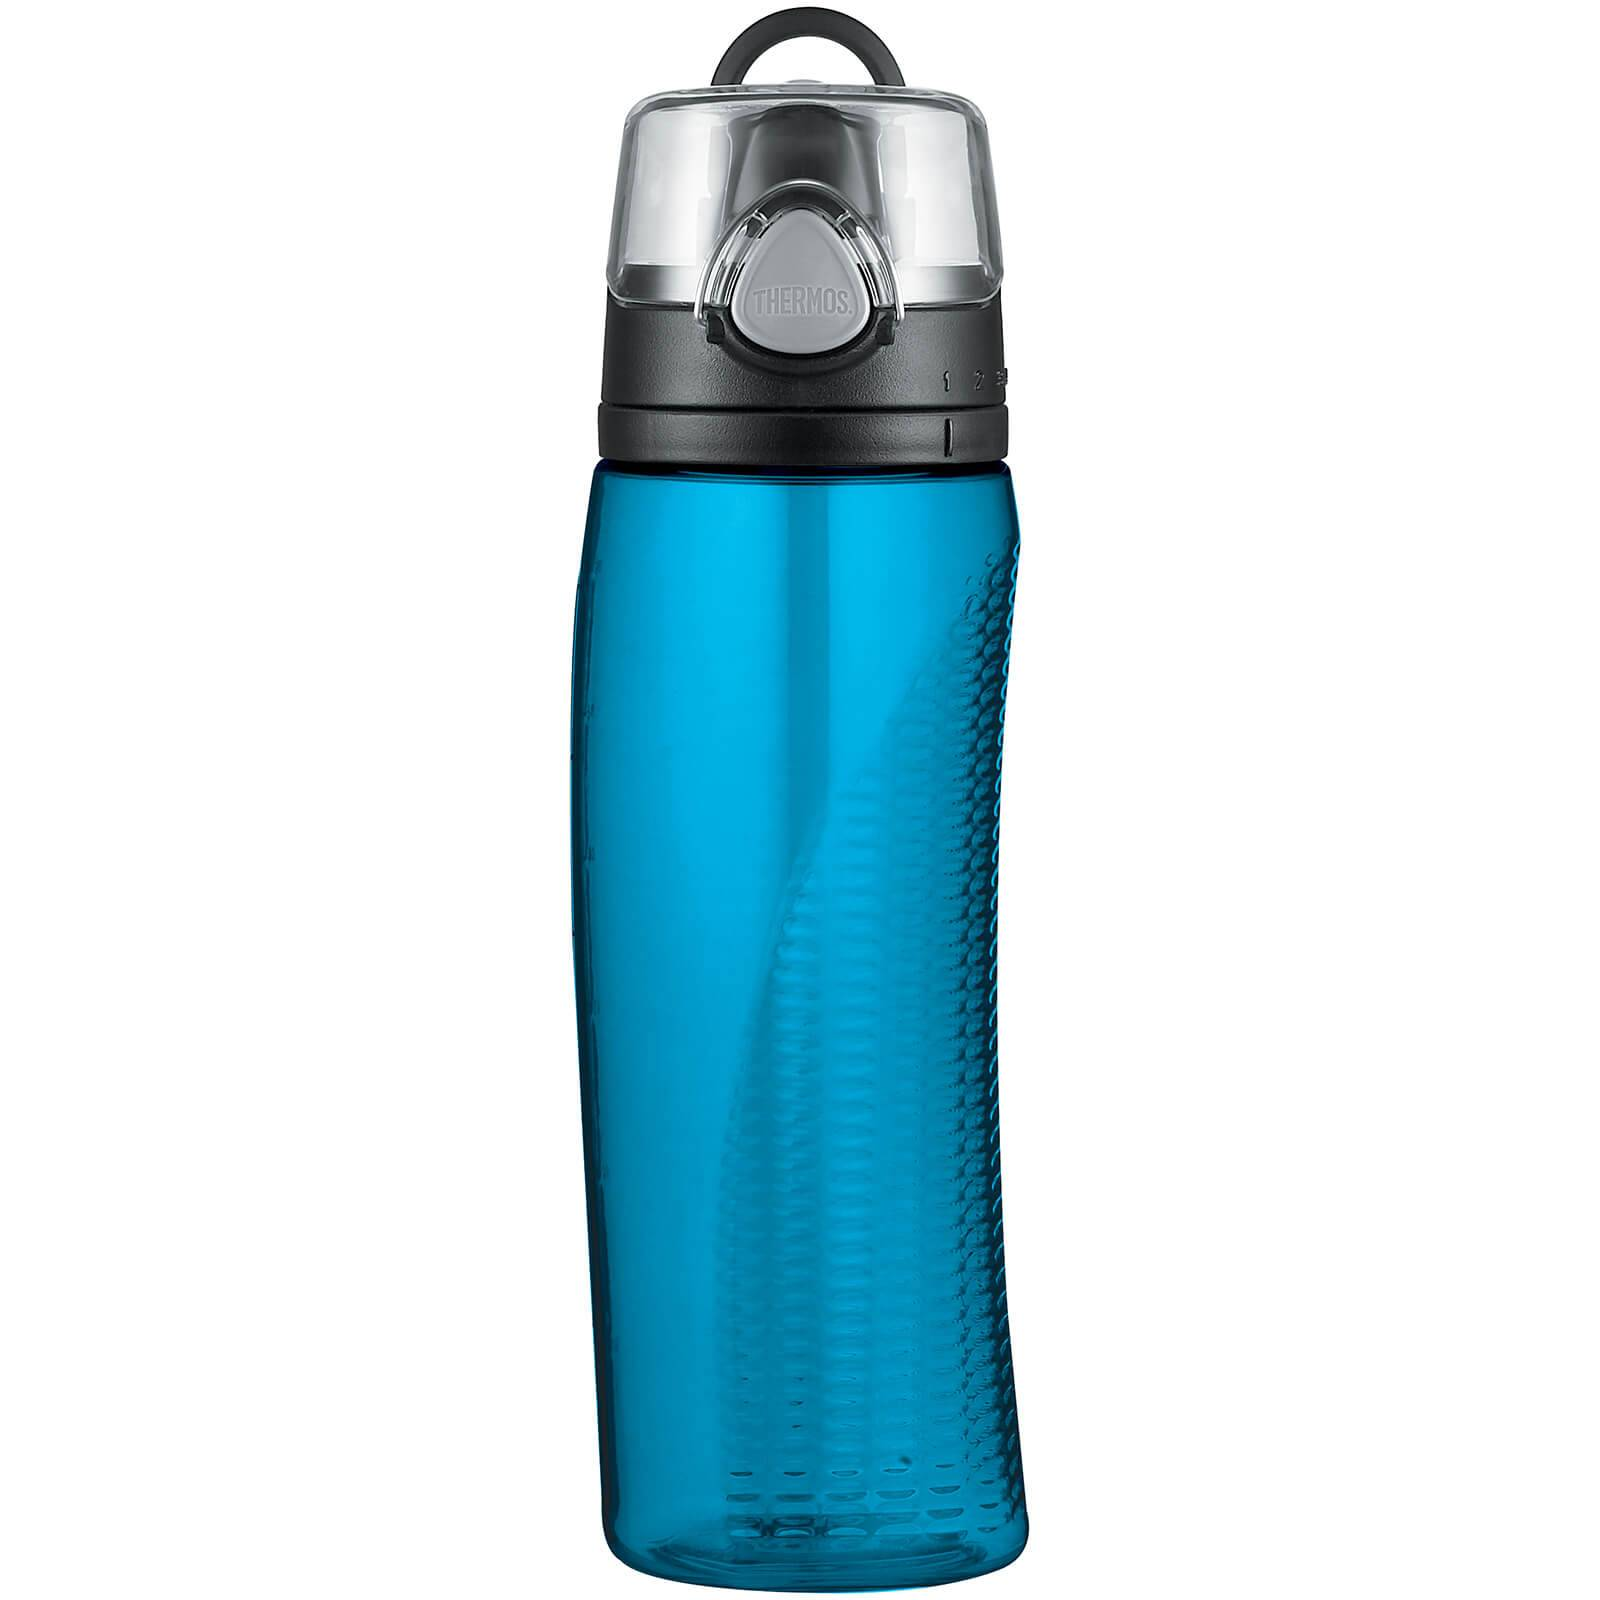 Thermos Hydration Bottle with Meter - Teal 710ml